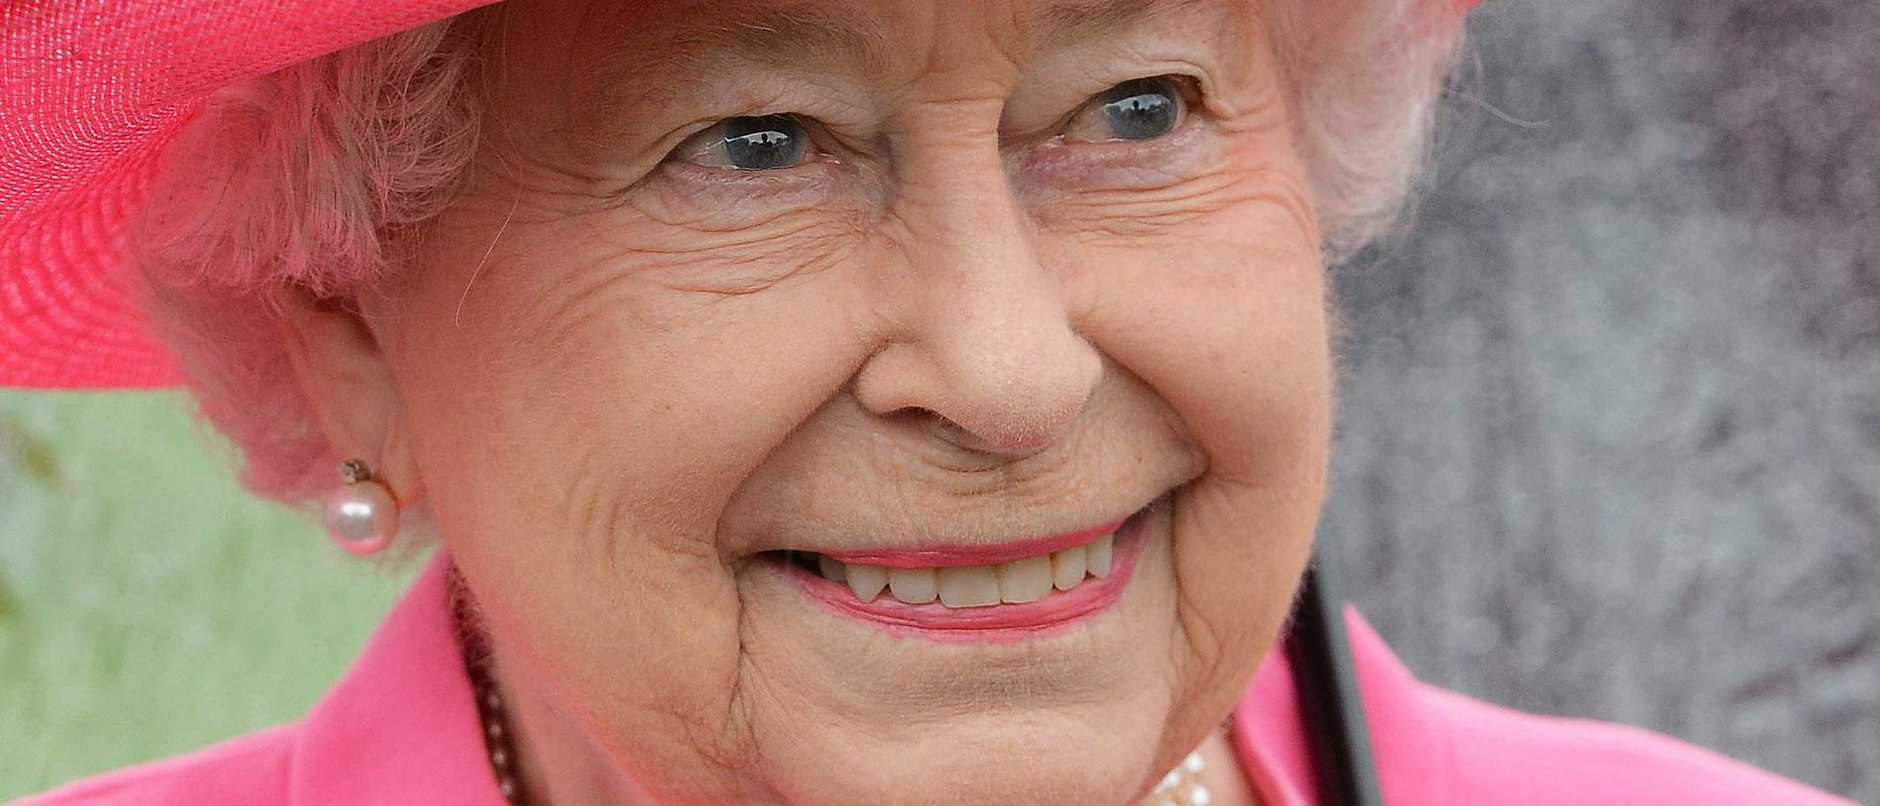 In a shock move, the Queen has been told she is no longer wanted as figurehead of this nation as it moves to become a republic.